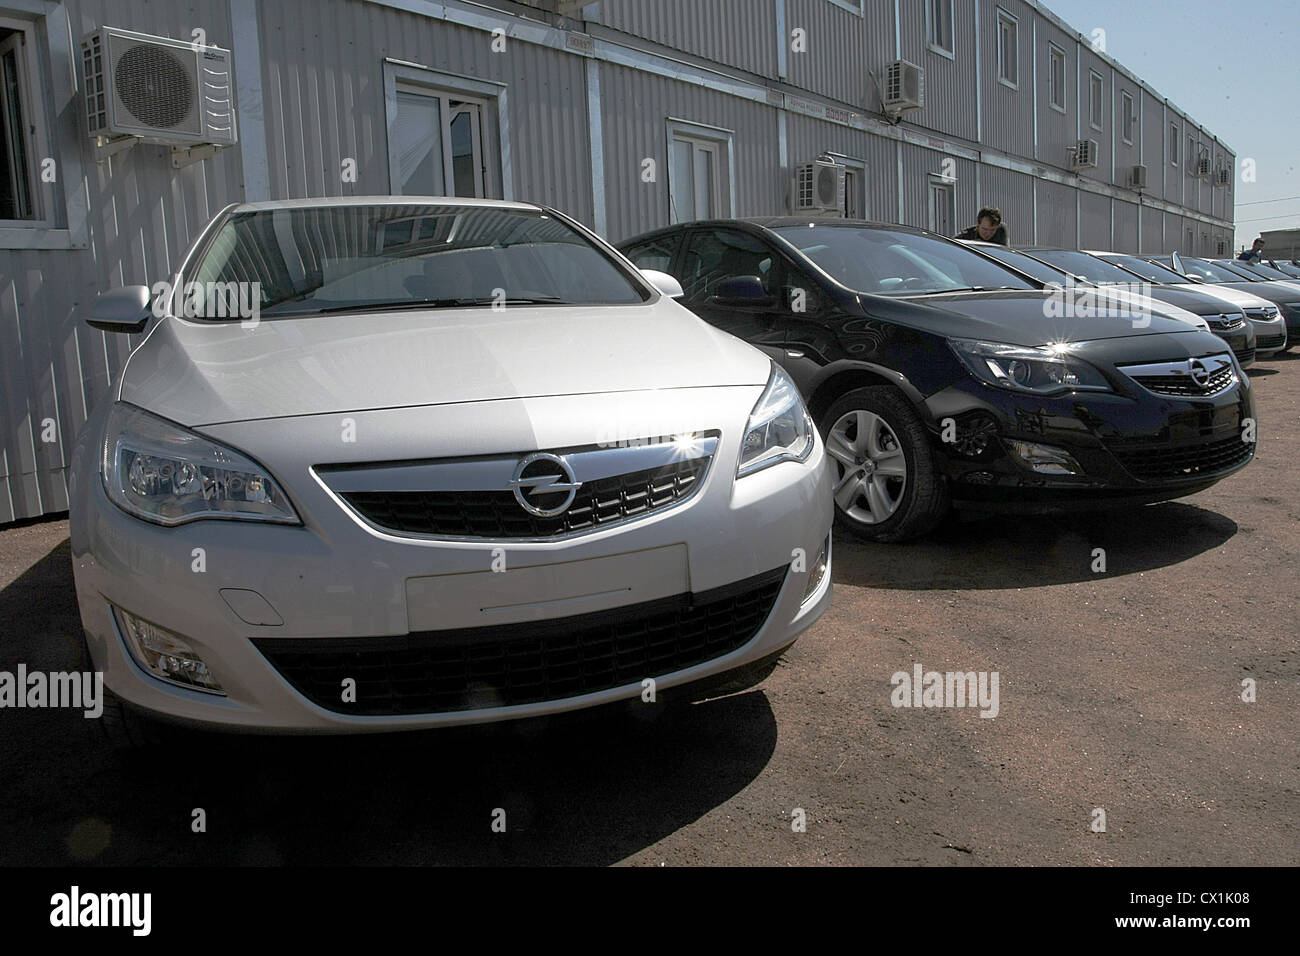 LENINGRAD REGION, RUSSIA. JUNE 29, 2010. These Opel Astra cars have rolled off the production line at the General - Stock Image